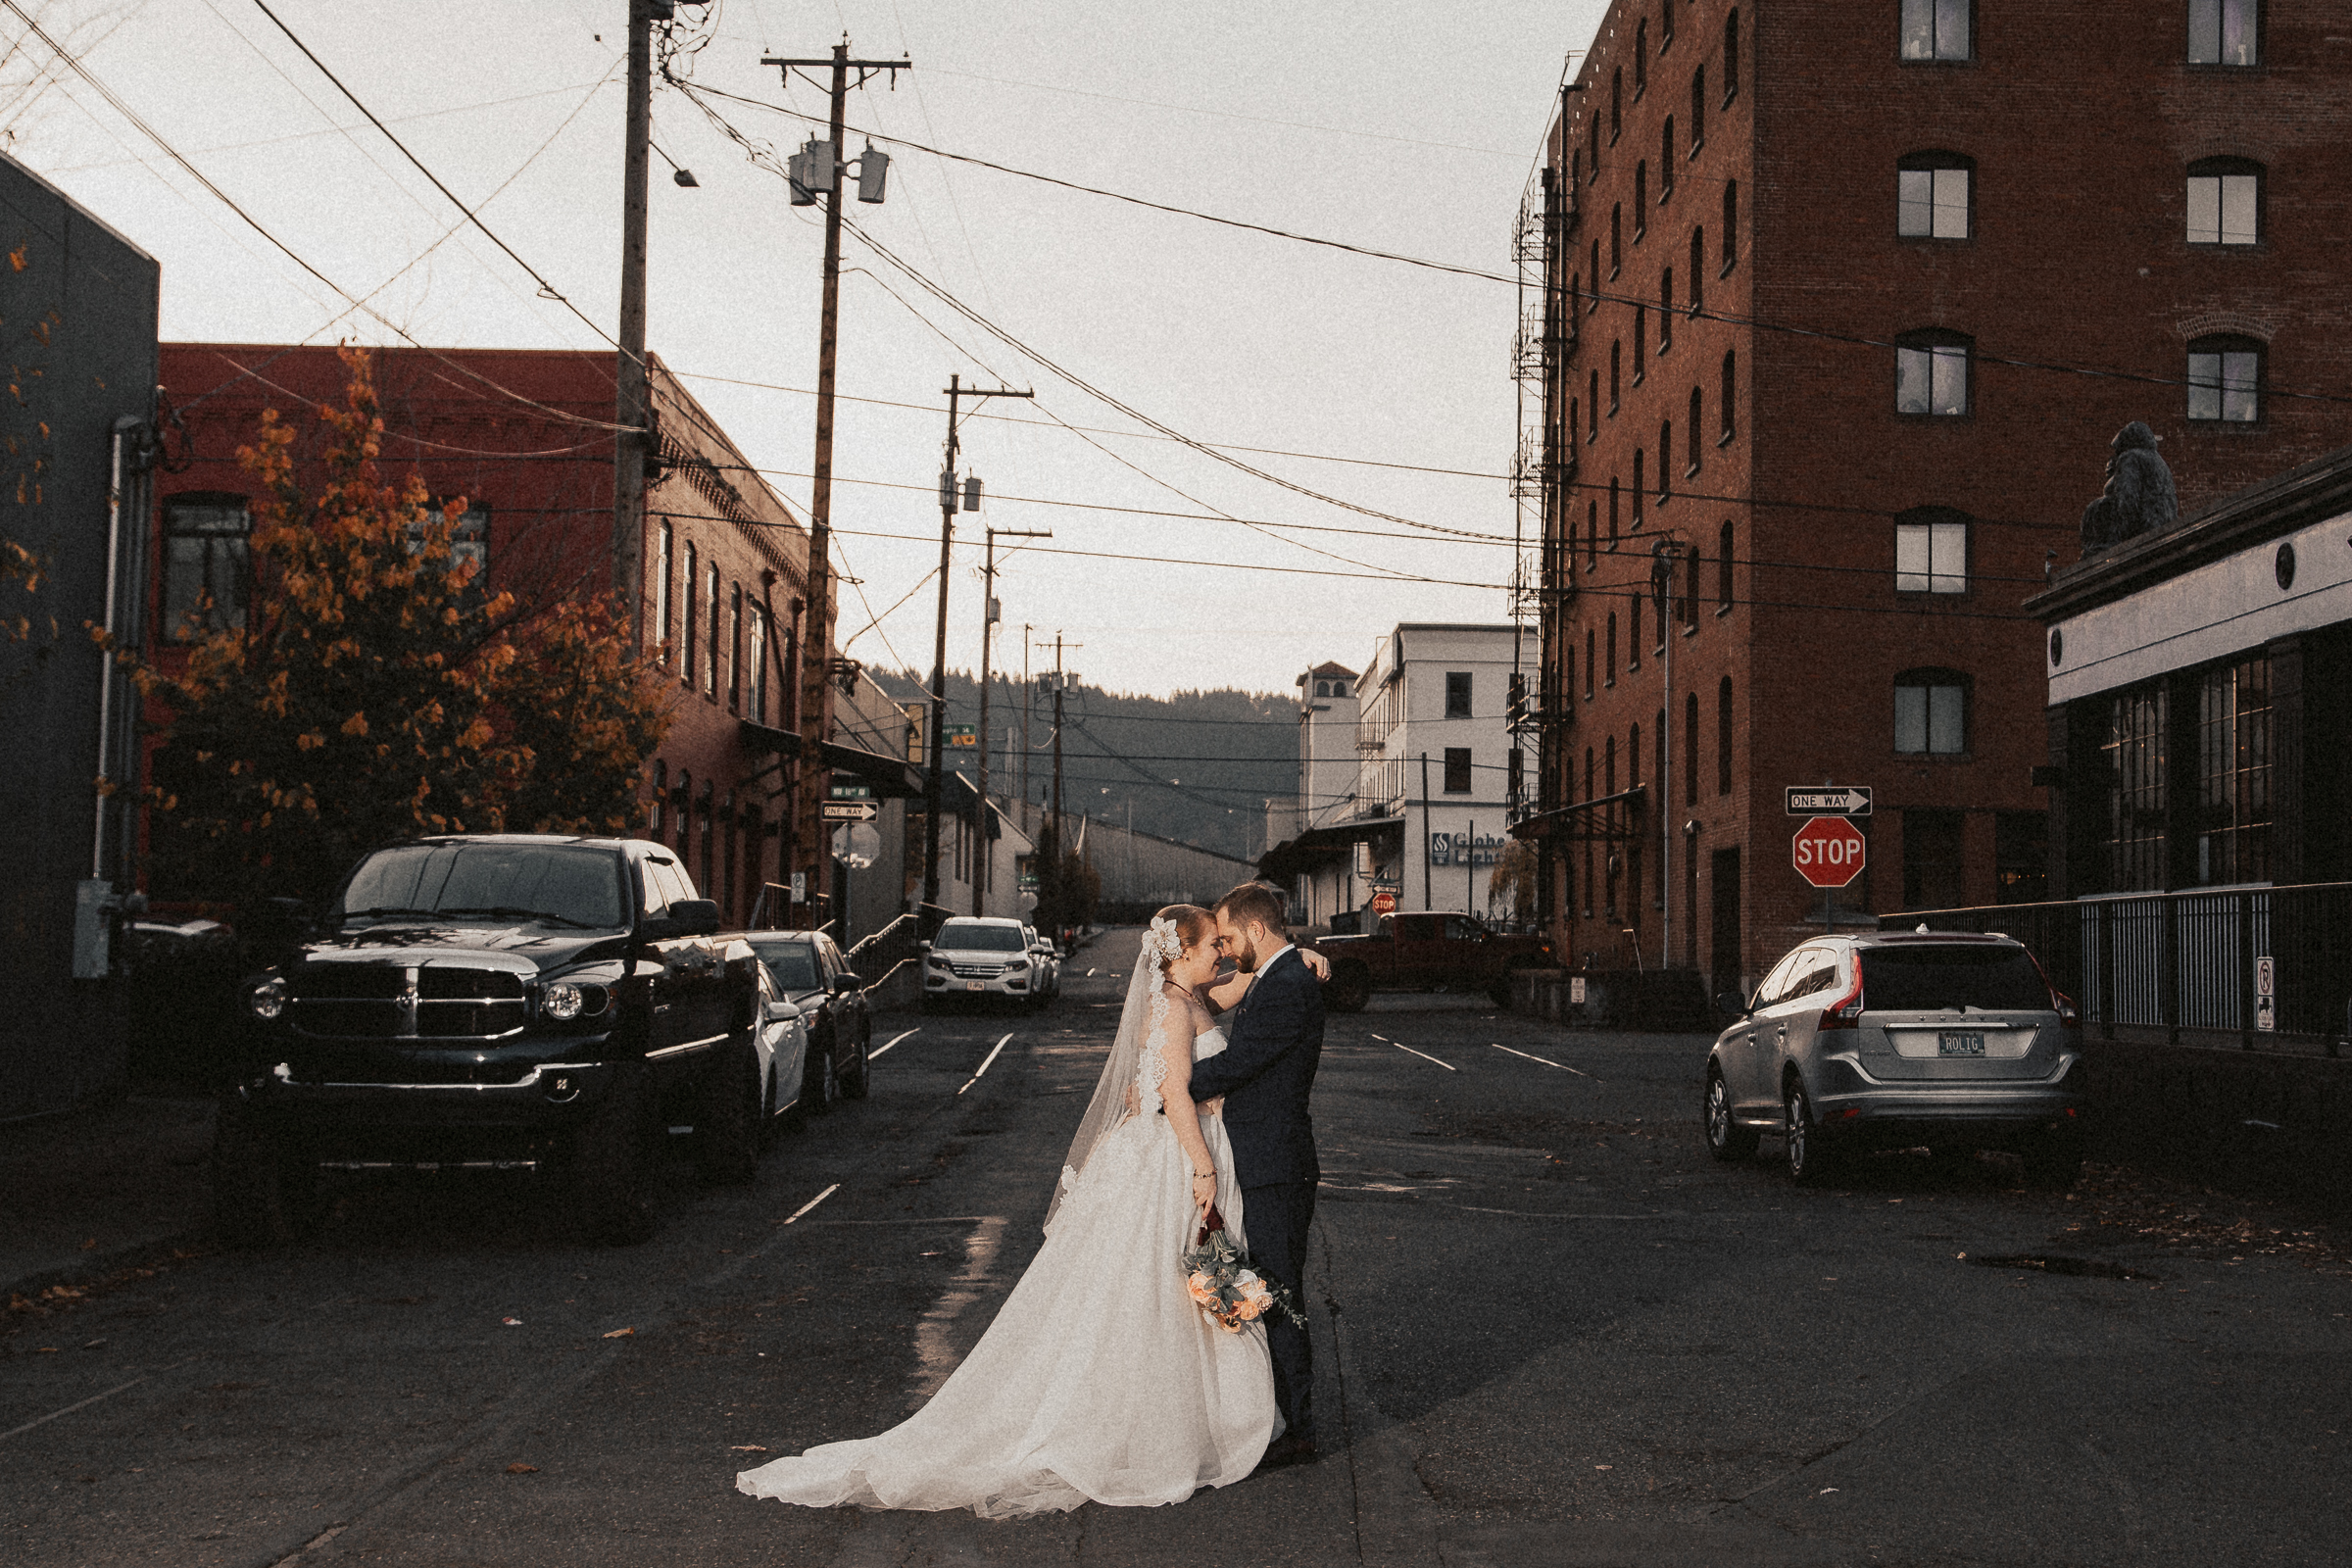 Sample gallery: Castaway Portland wedding -